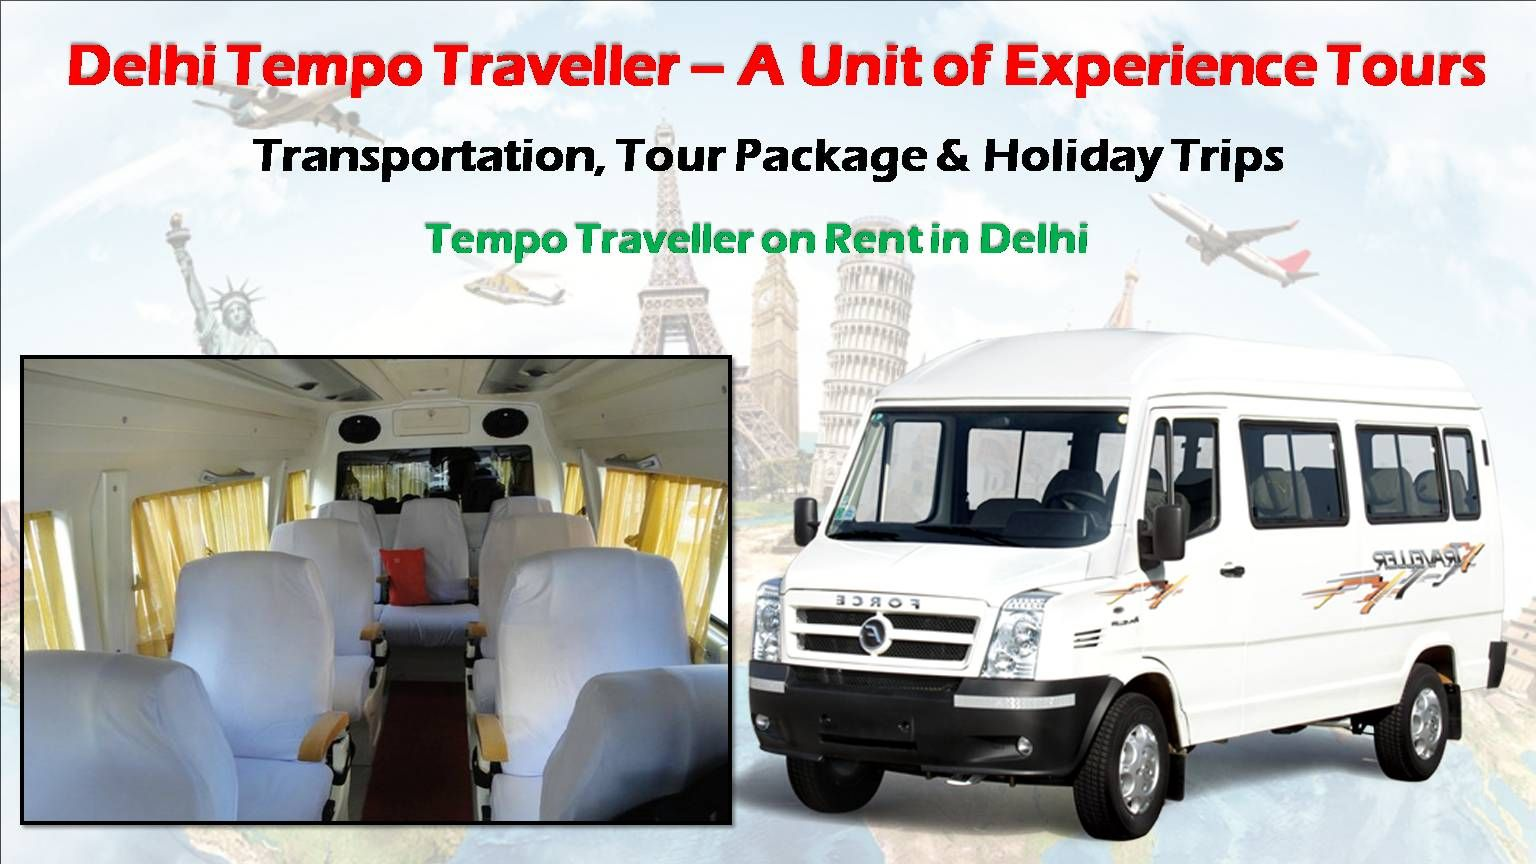 Delhi Tempo Traveller Is One Who Offers World Class Transportation Services To Tourists From Across The World Si Travel Marketing Travel Cheap Travel Insurance